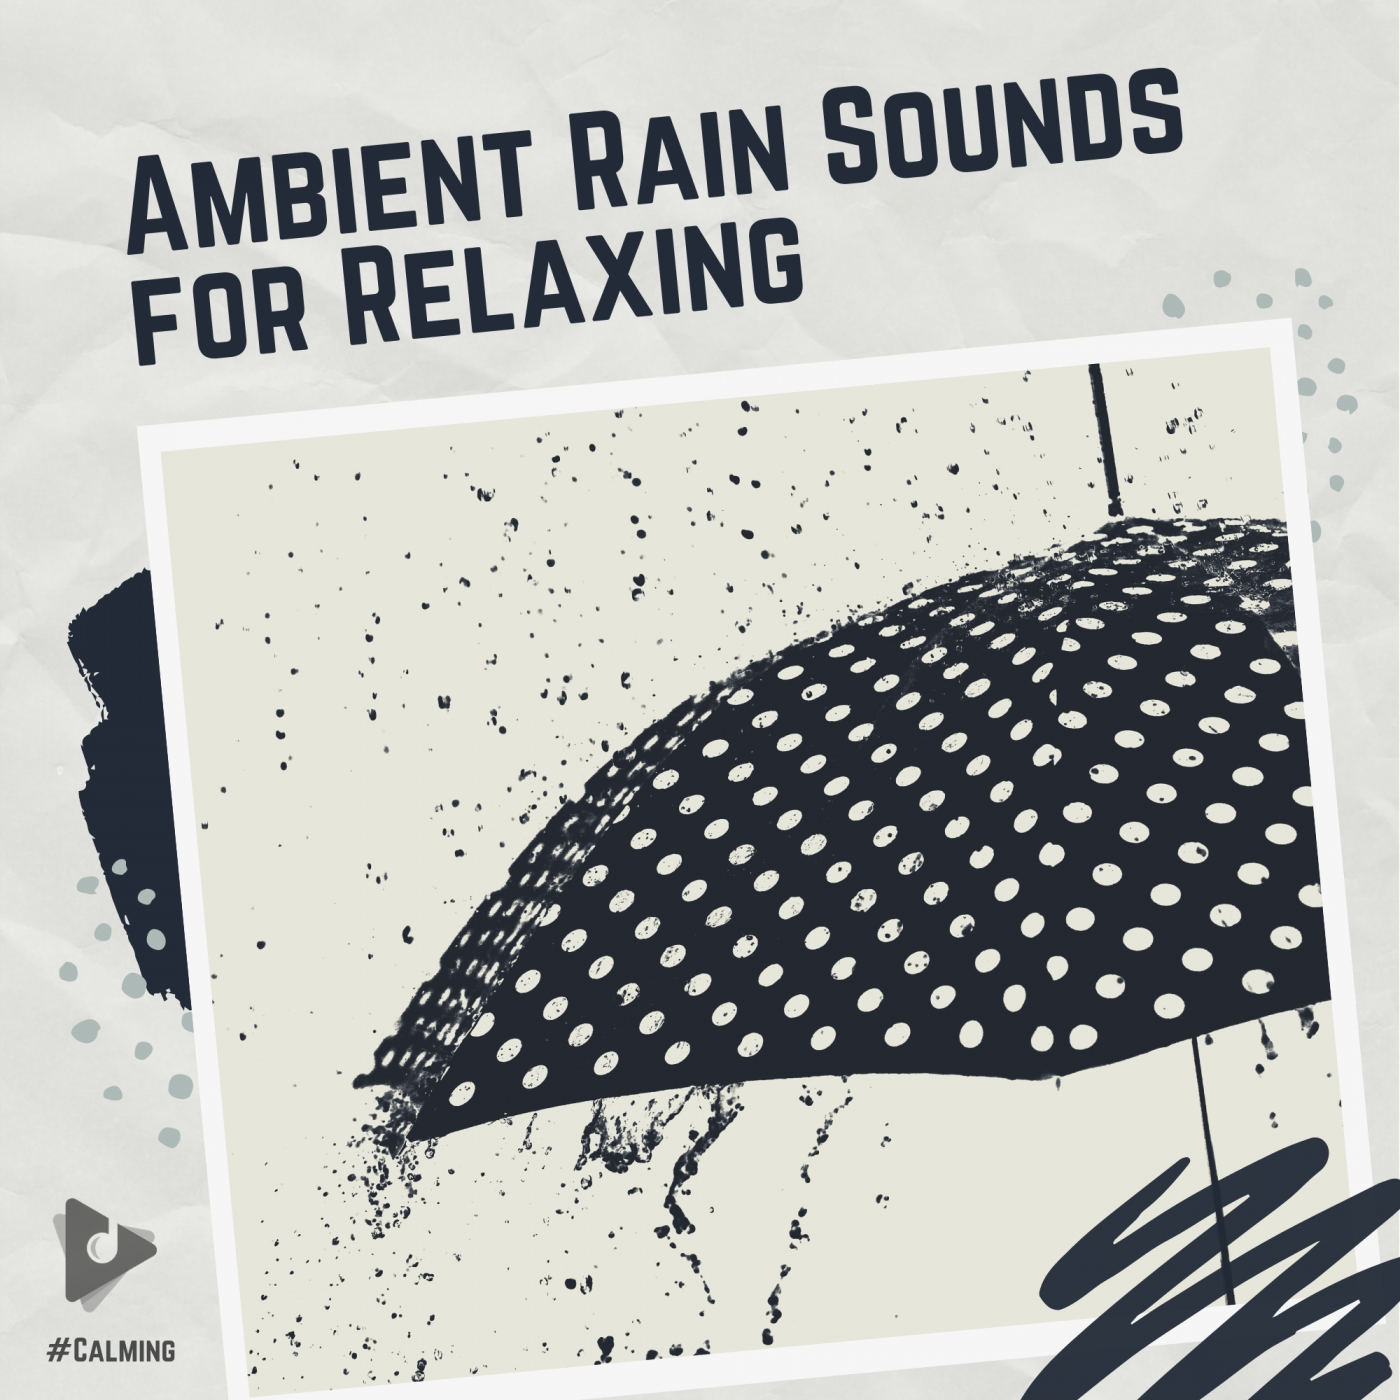 Ambient Rain Sounds for Relaxing